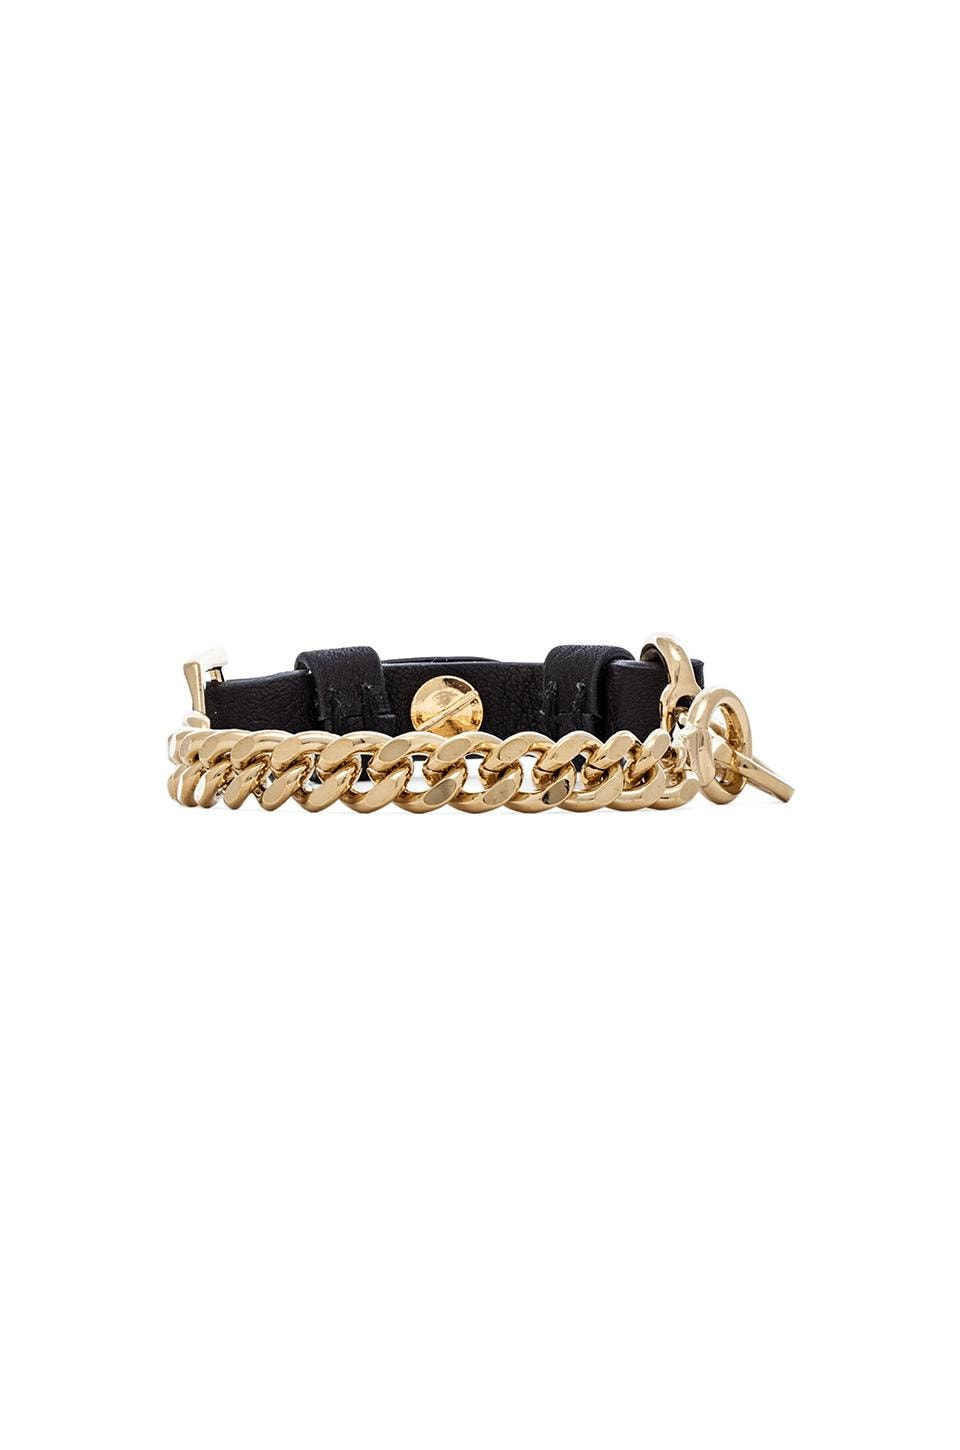 Marc by Marc Jacobs BMX Leather Bracelet in Black